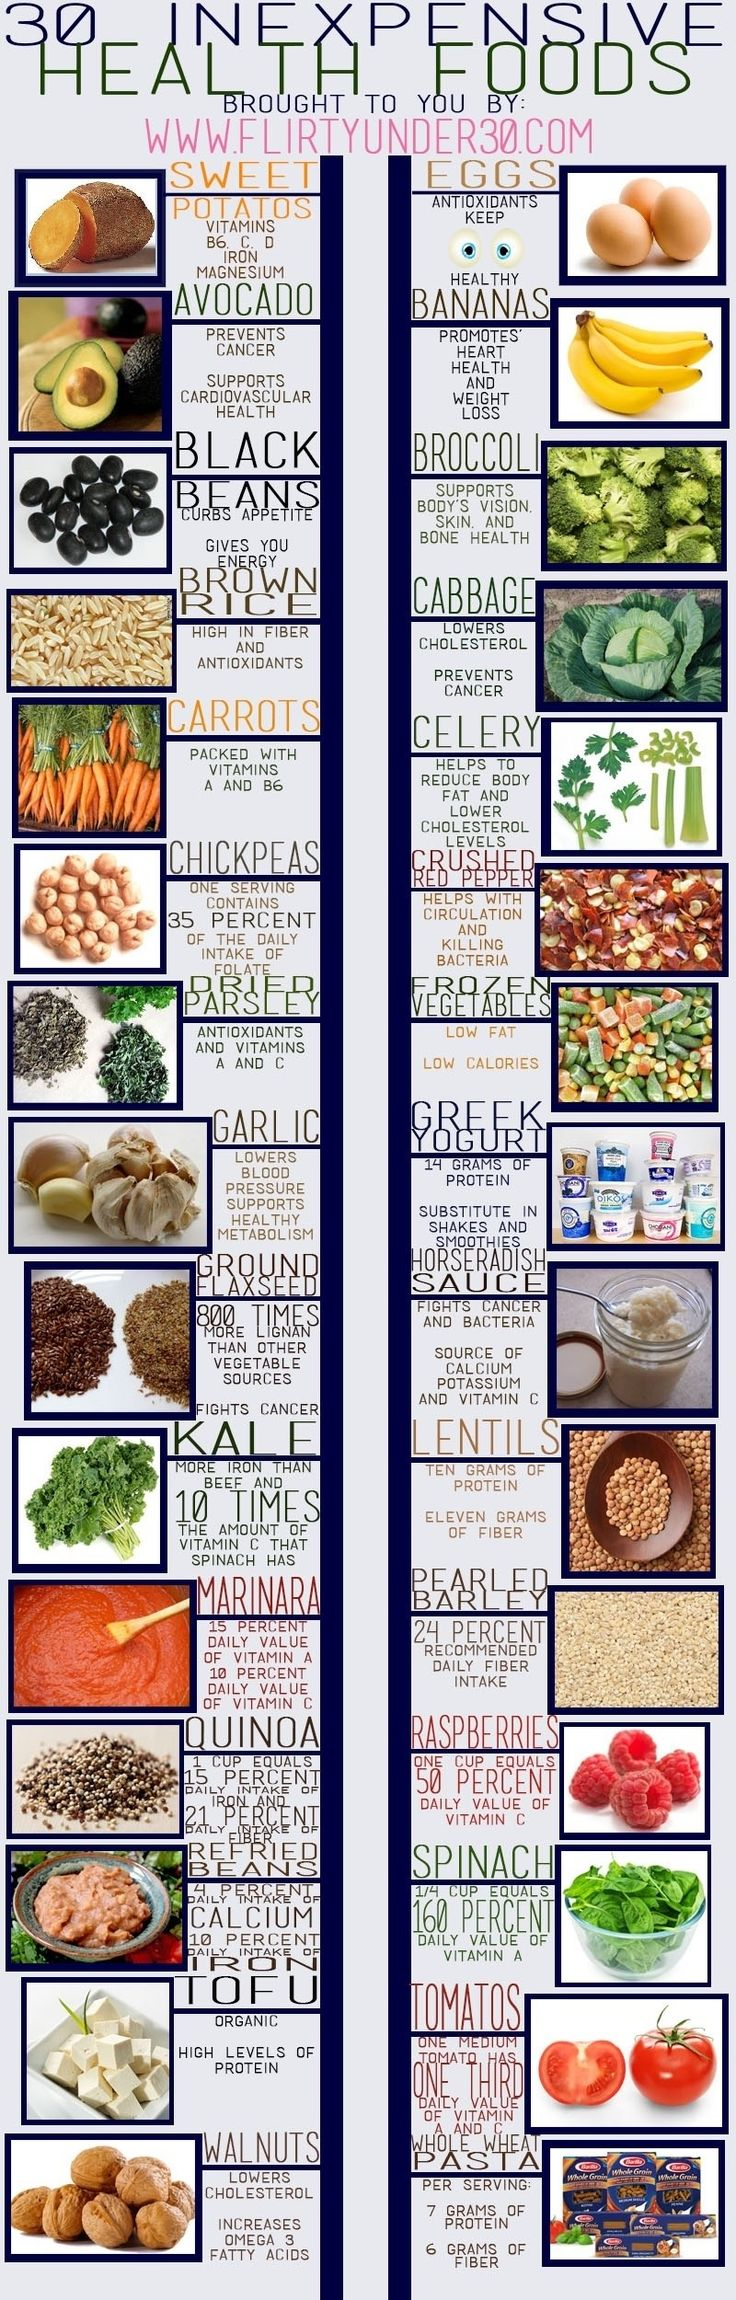 Without a doubt, eating well and heathy is very essential to keep your body fresh, energized and in good condition. However, some times, food that is considered to be healthy can be a little bit unreasonable in terms of price. Here is a list of 30 food items that are amazingly healthy as well as inexpensive, so it's a win-win situation! Check it out: Infographic by – Flirty Under 30